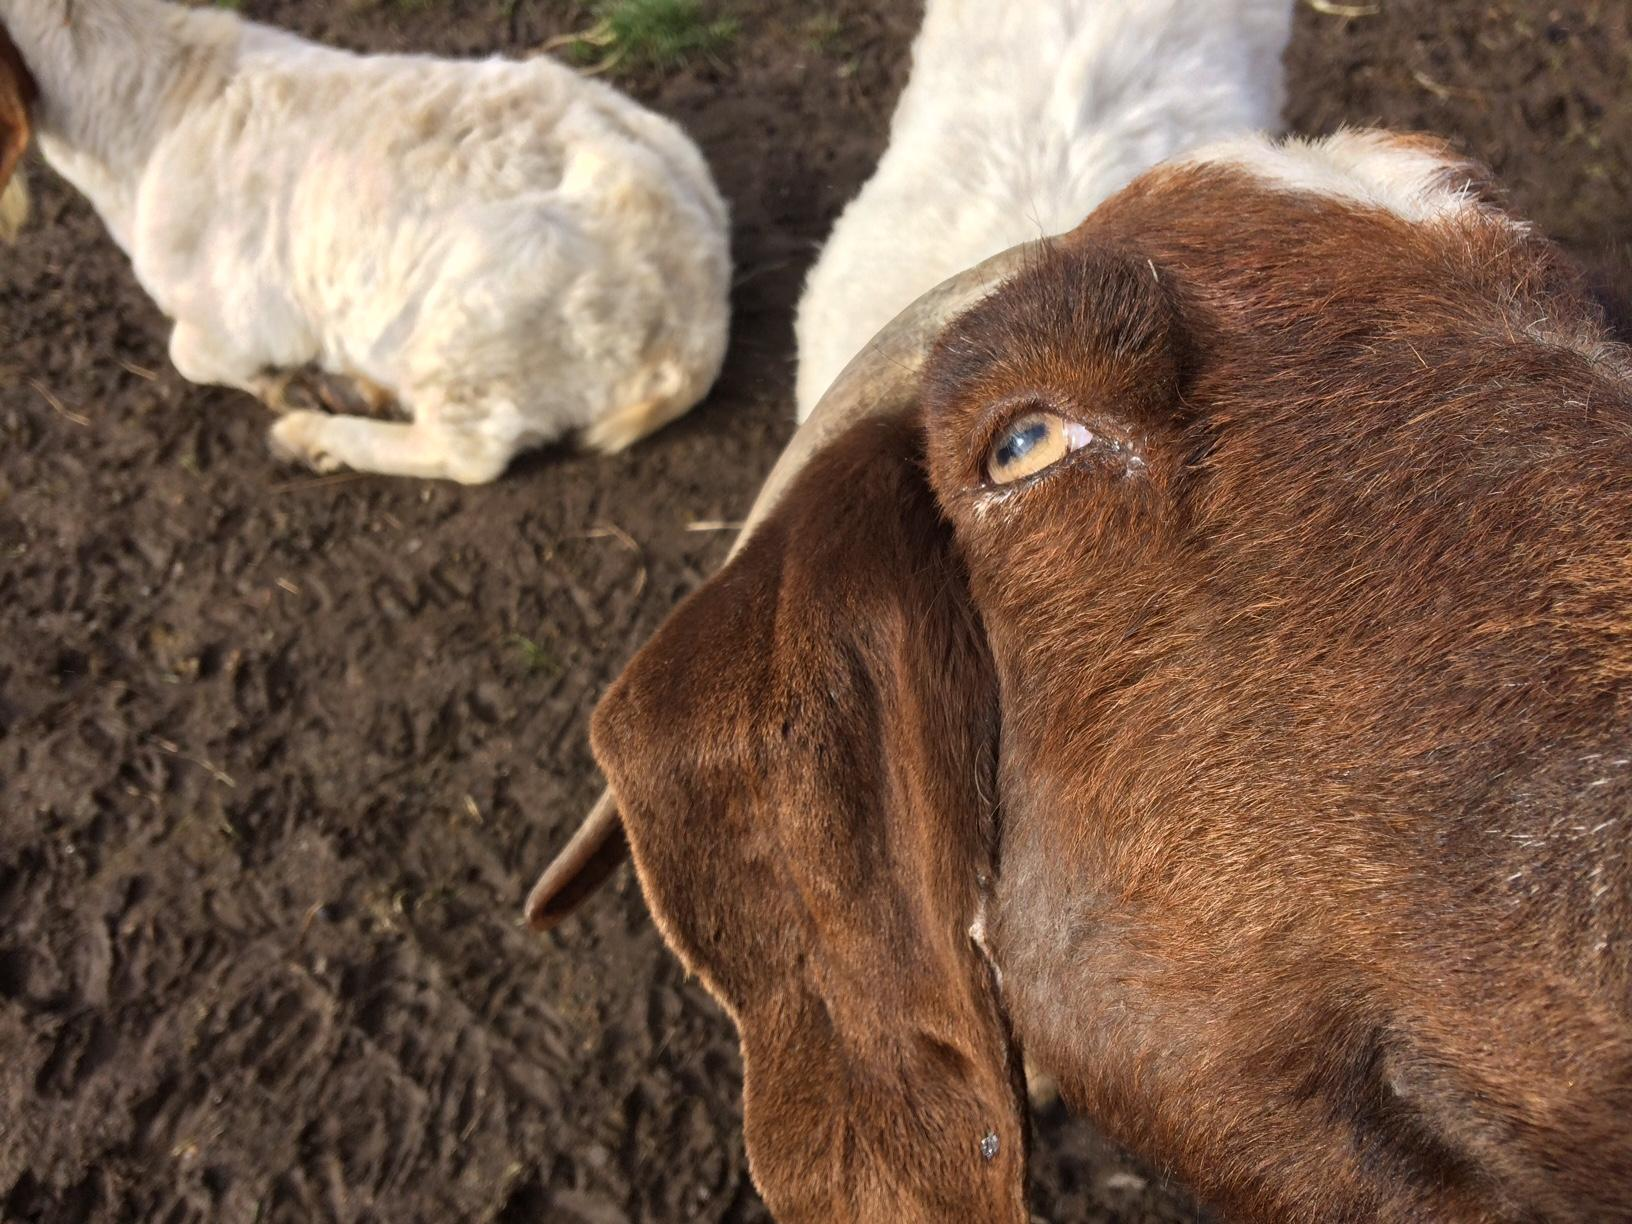 Motorists along Airport Road west of Lebanon are still doing double takes on the sight of 110 Boer goats and a guard zebra named Zinfandel, or Lady Zin for short. It's all part of the 90 acre Wilton Boer goat ranch owned by Norman and Rosalinda Vizina. (SBG)